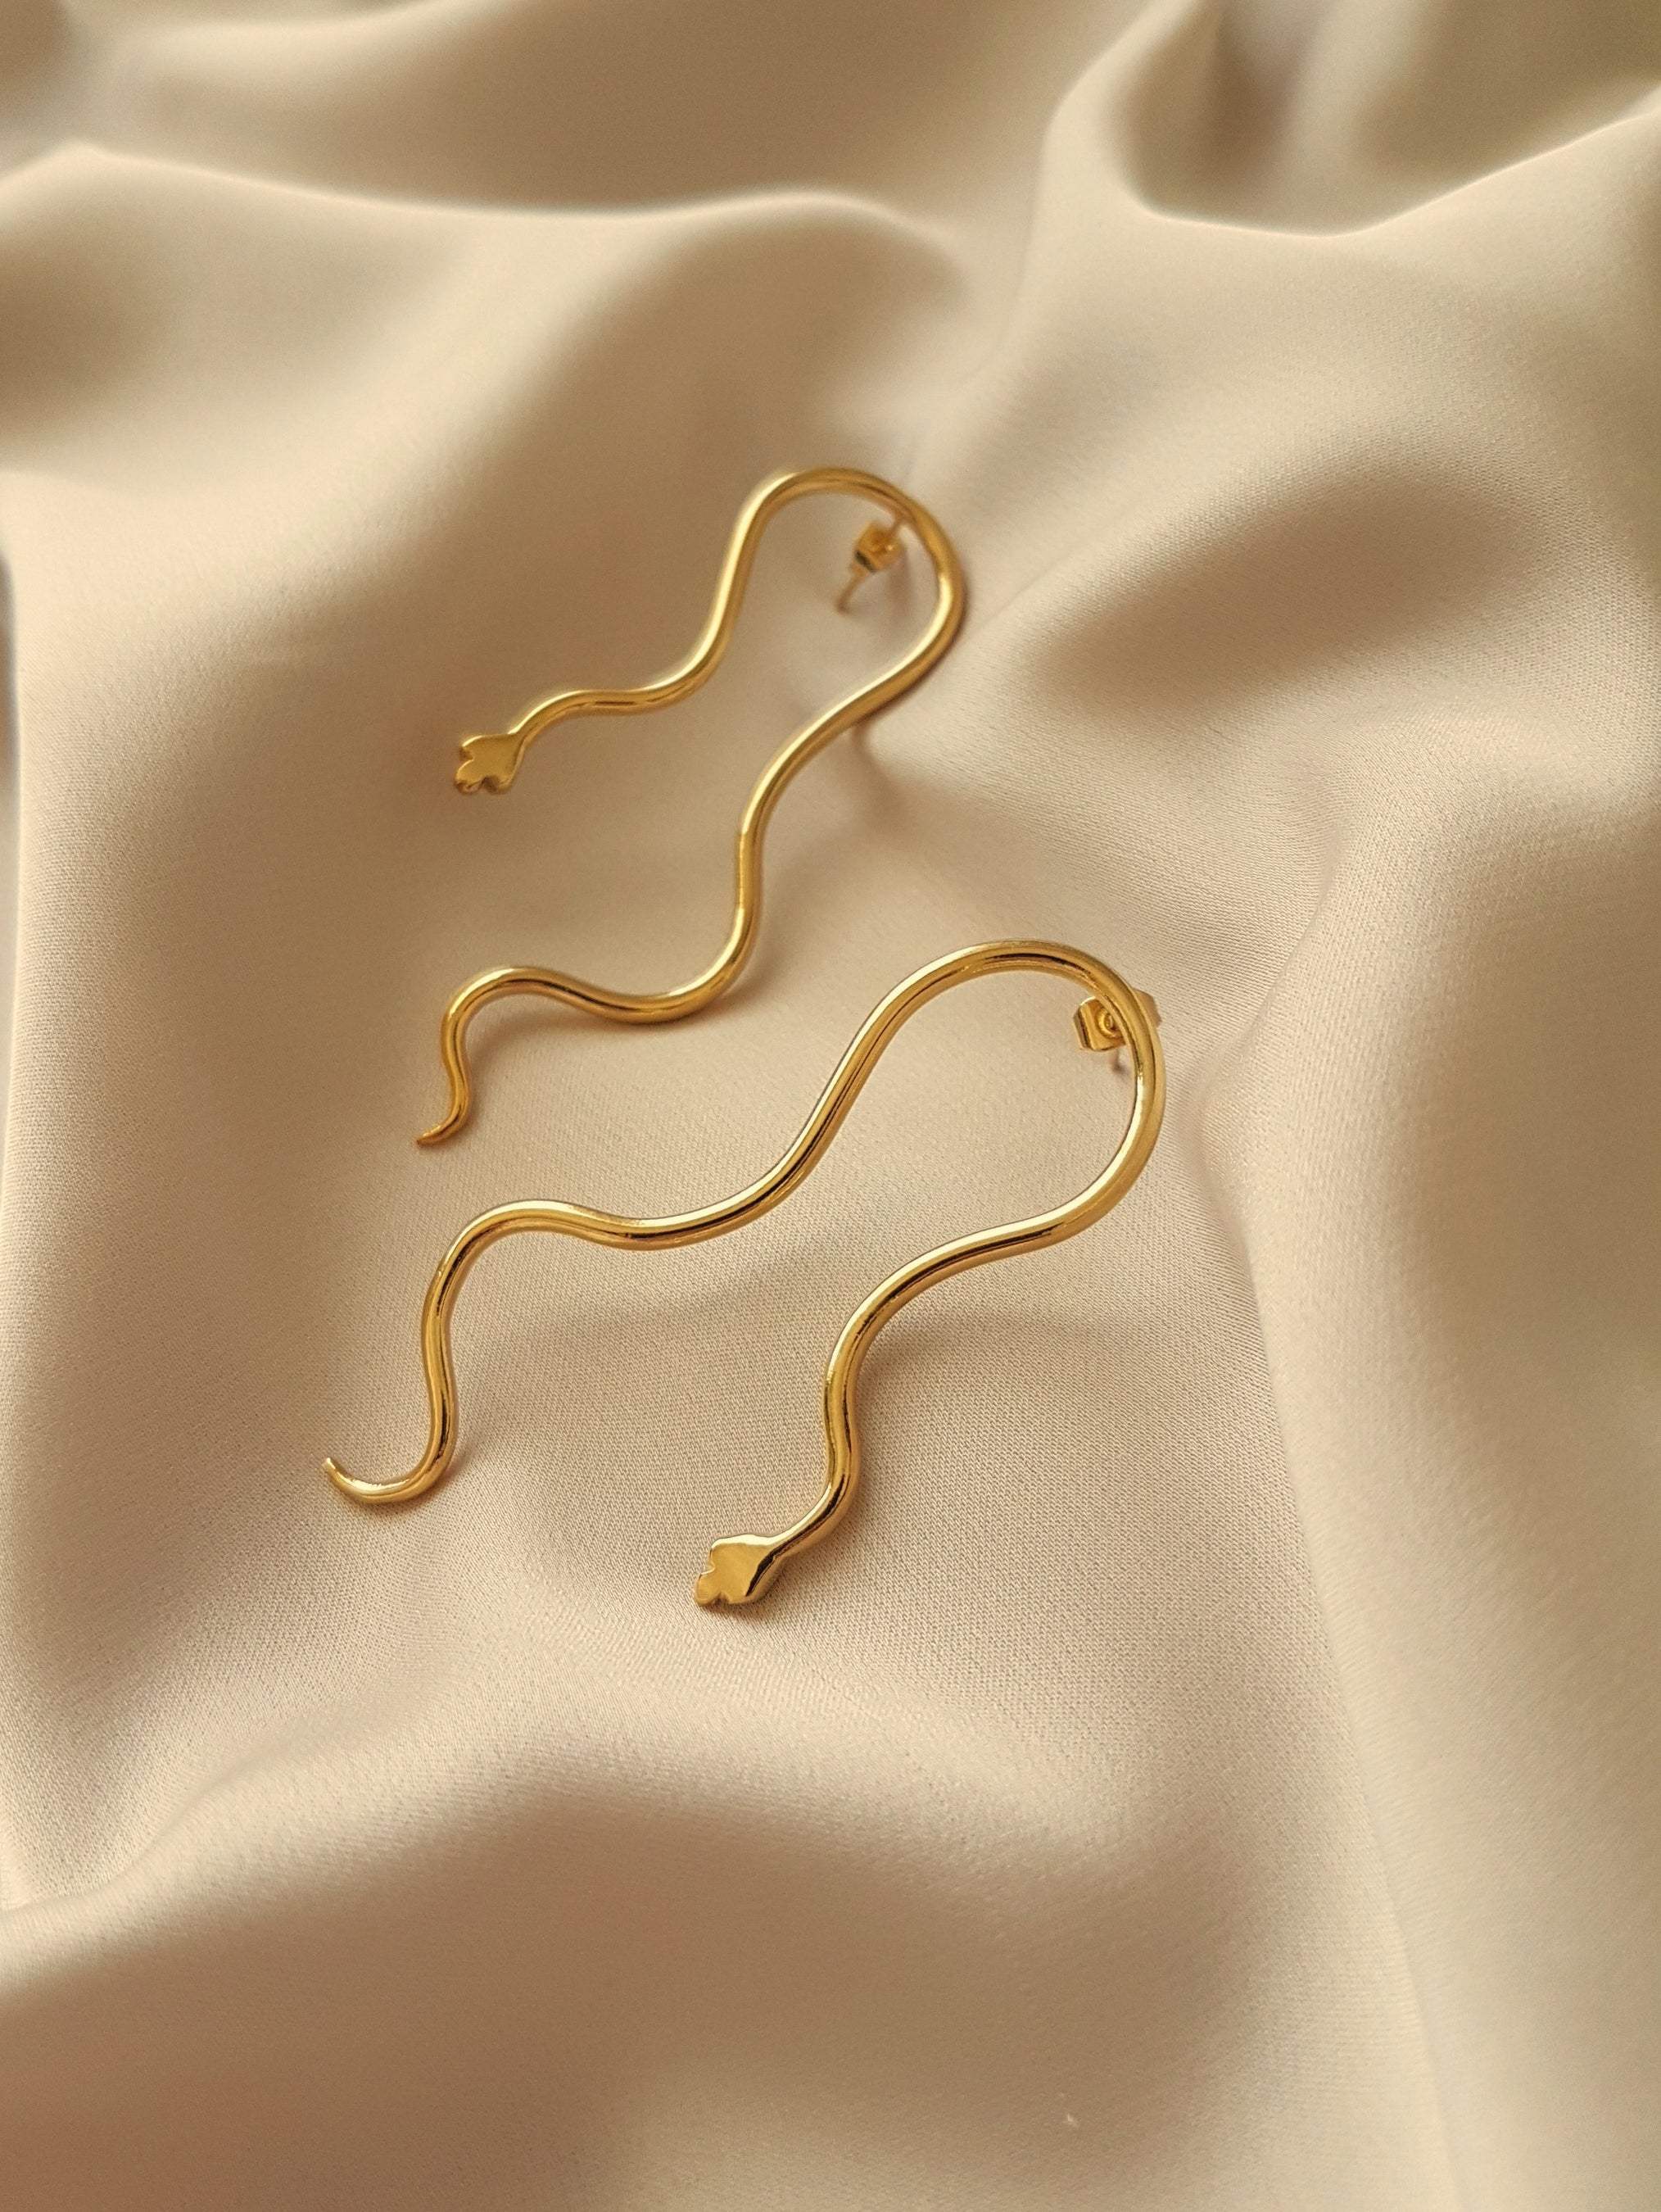 VIPER SNAKE EARRINGS